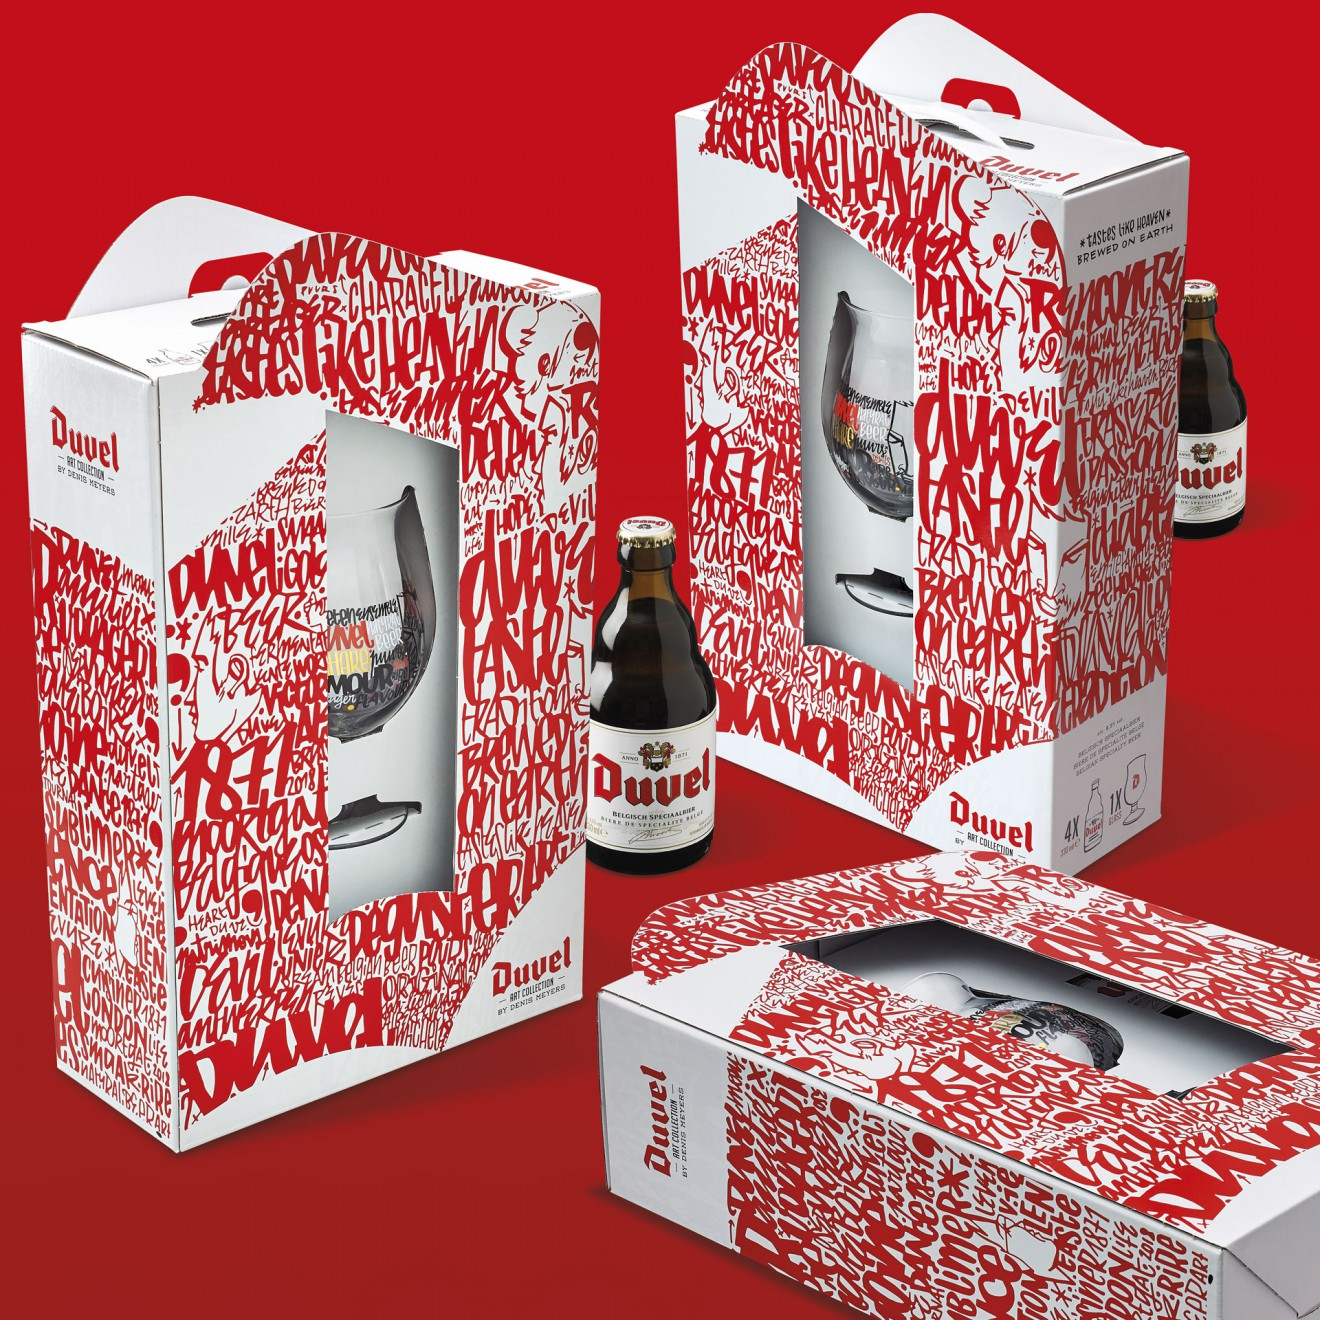 Quatre Mains package design - limited edition, duvel, bier, beer packaging, cardboard